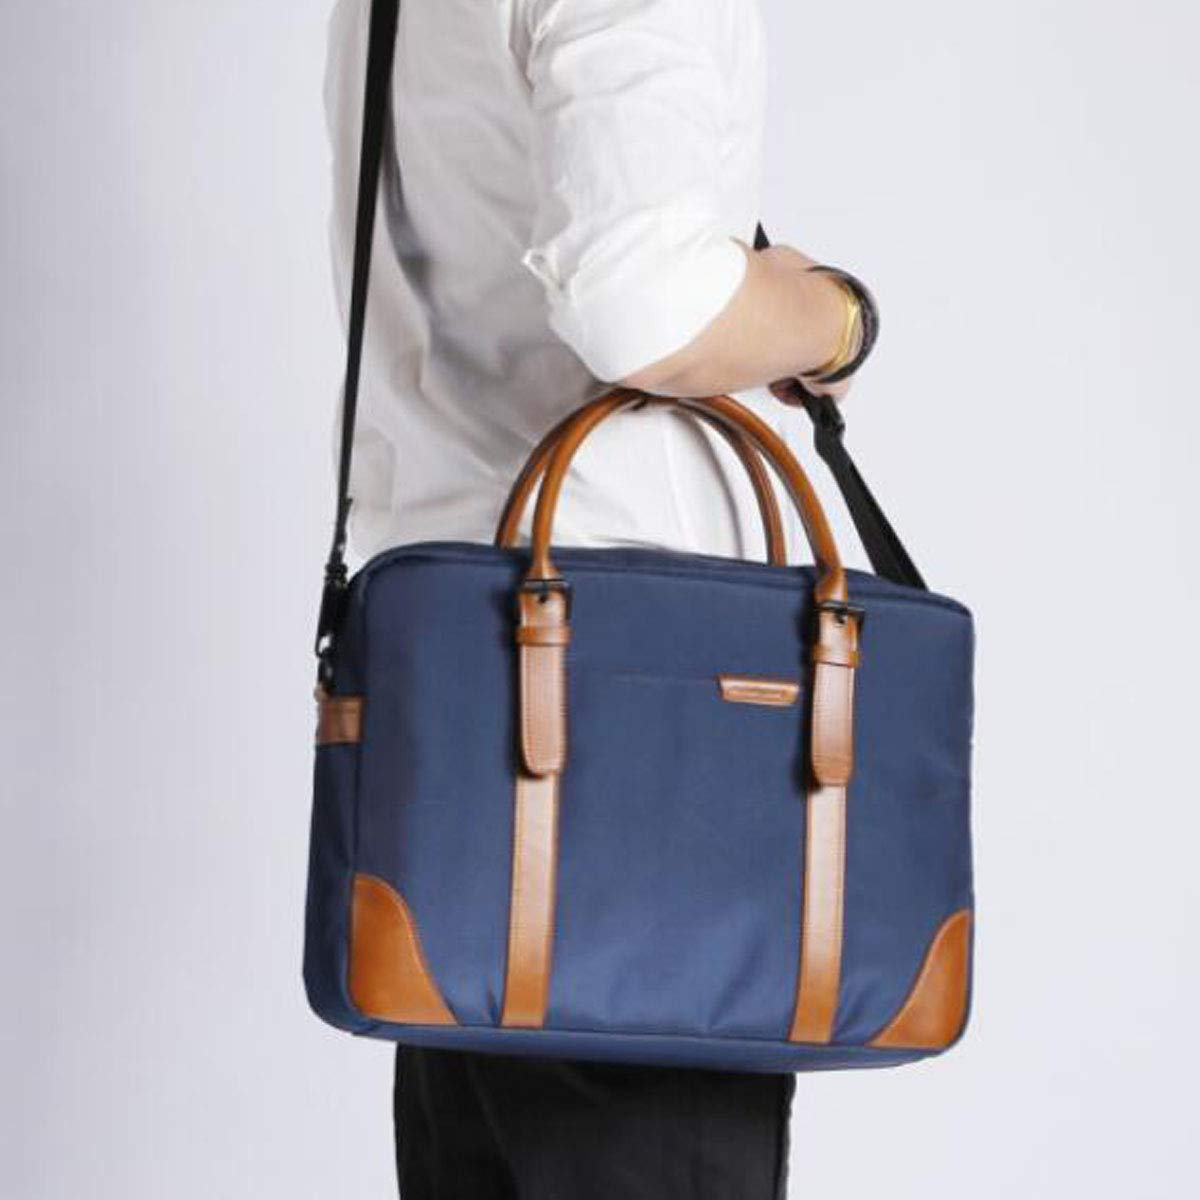 Business Travel Bag Size: 38927cm Quality Assured Color : Blue 14-inch Computer Bag Yougou01 Briefcase